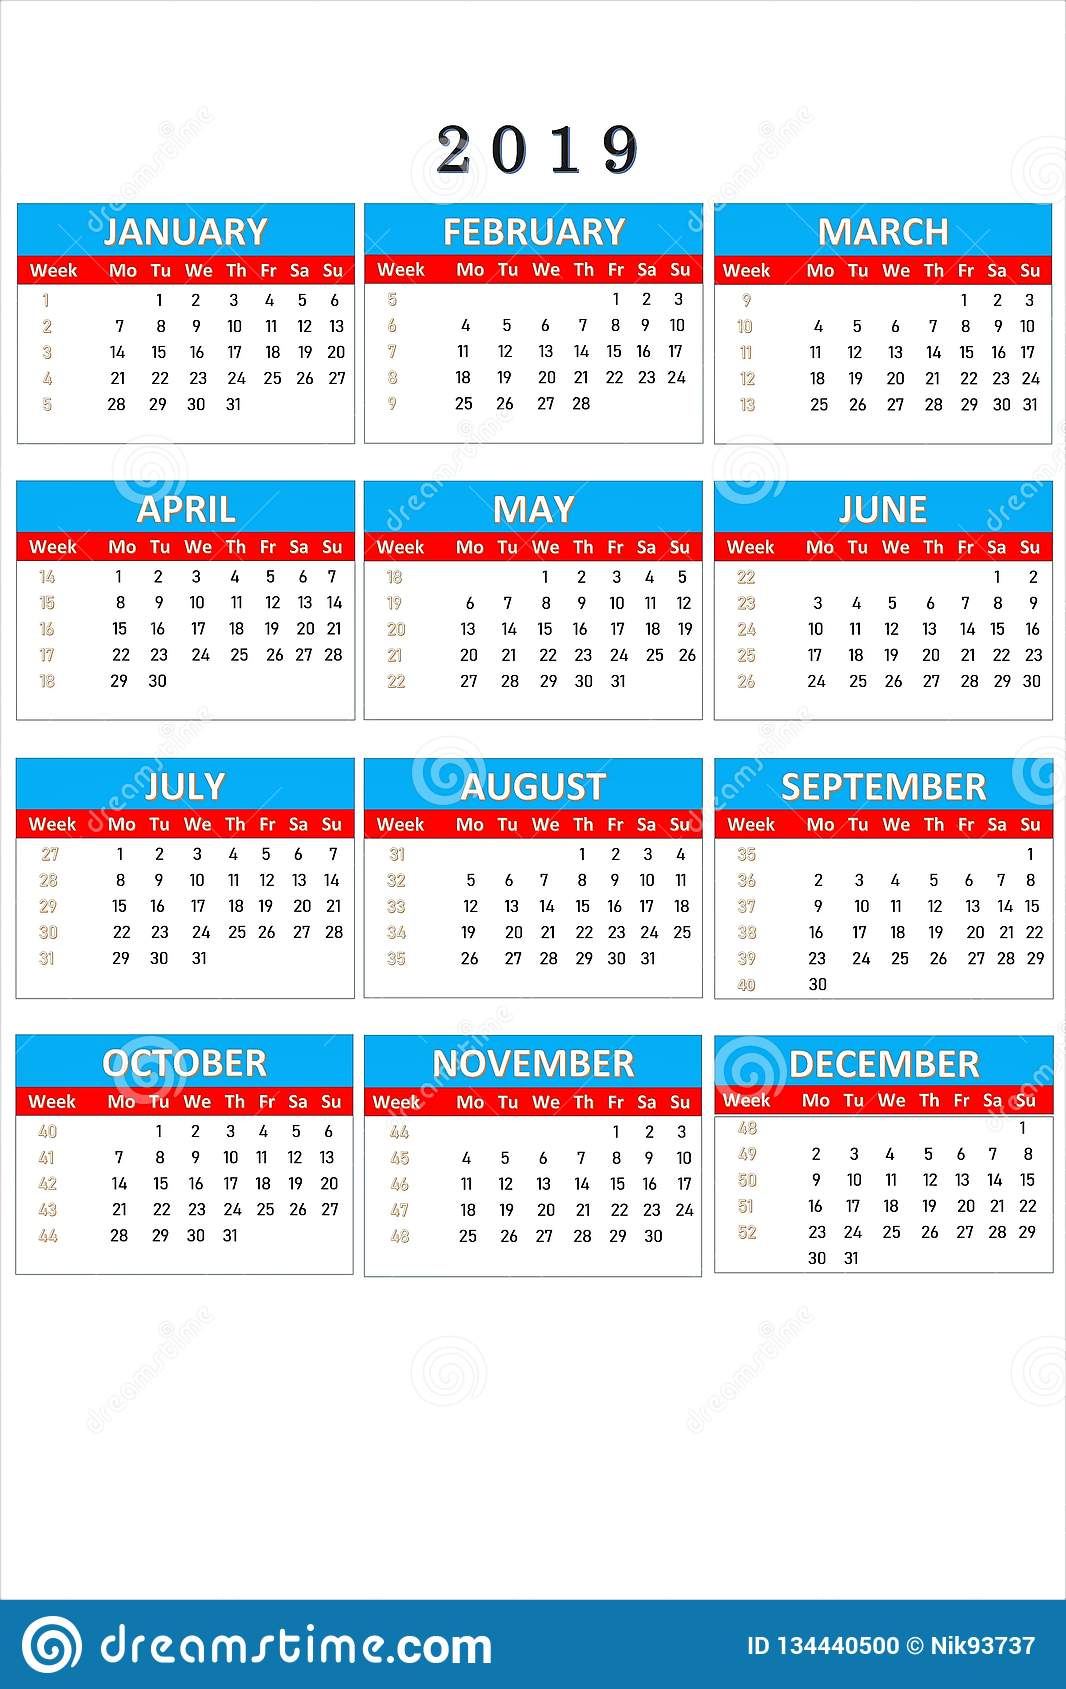 Calendar For 2019 For Notes And Office Work. Calendar Is